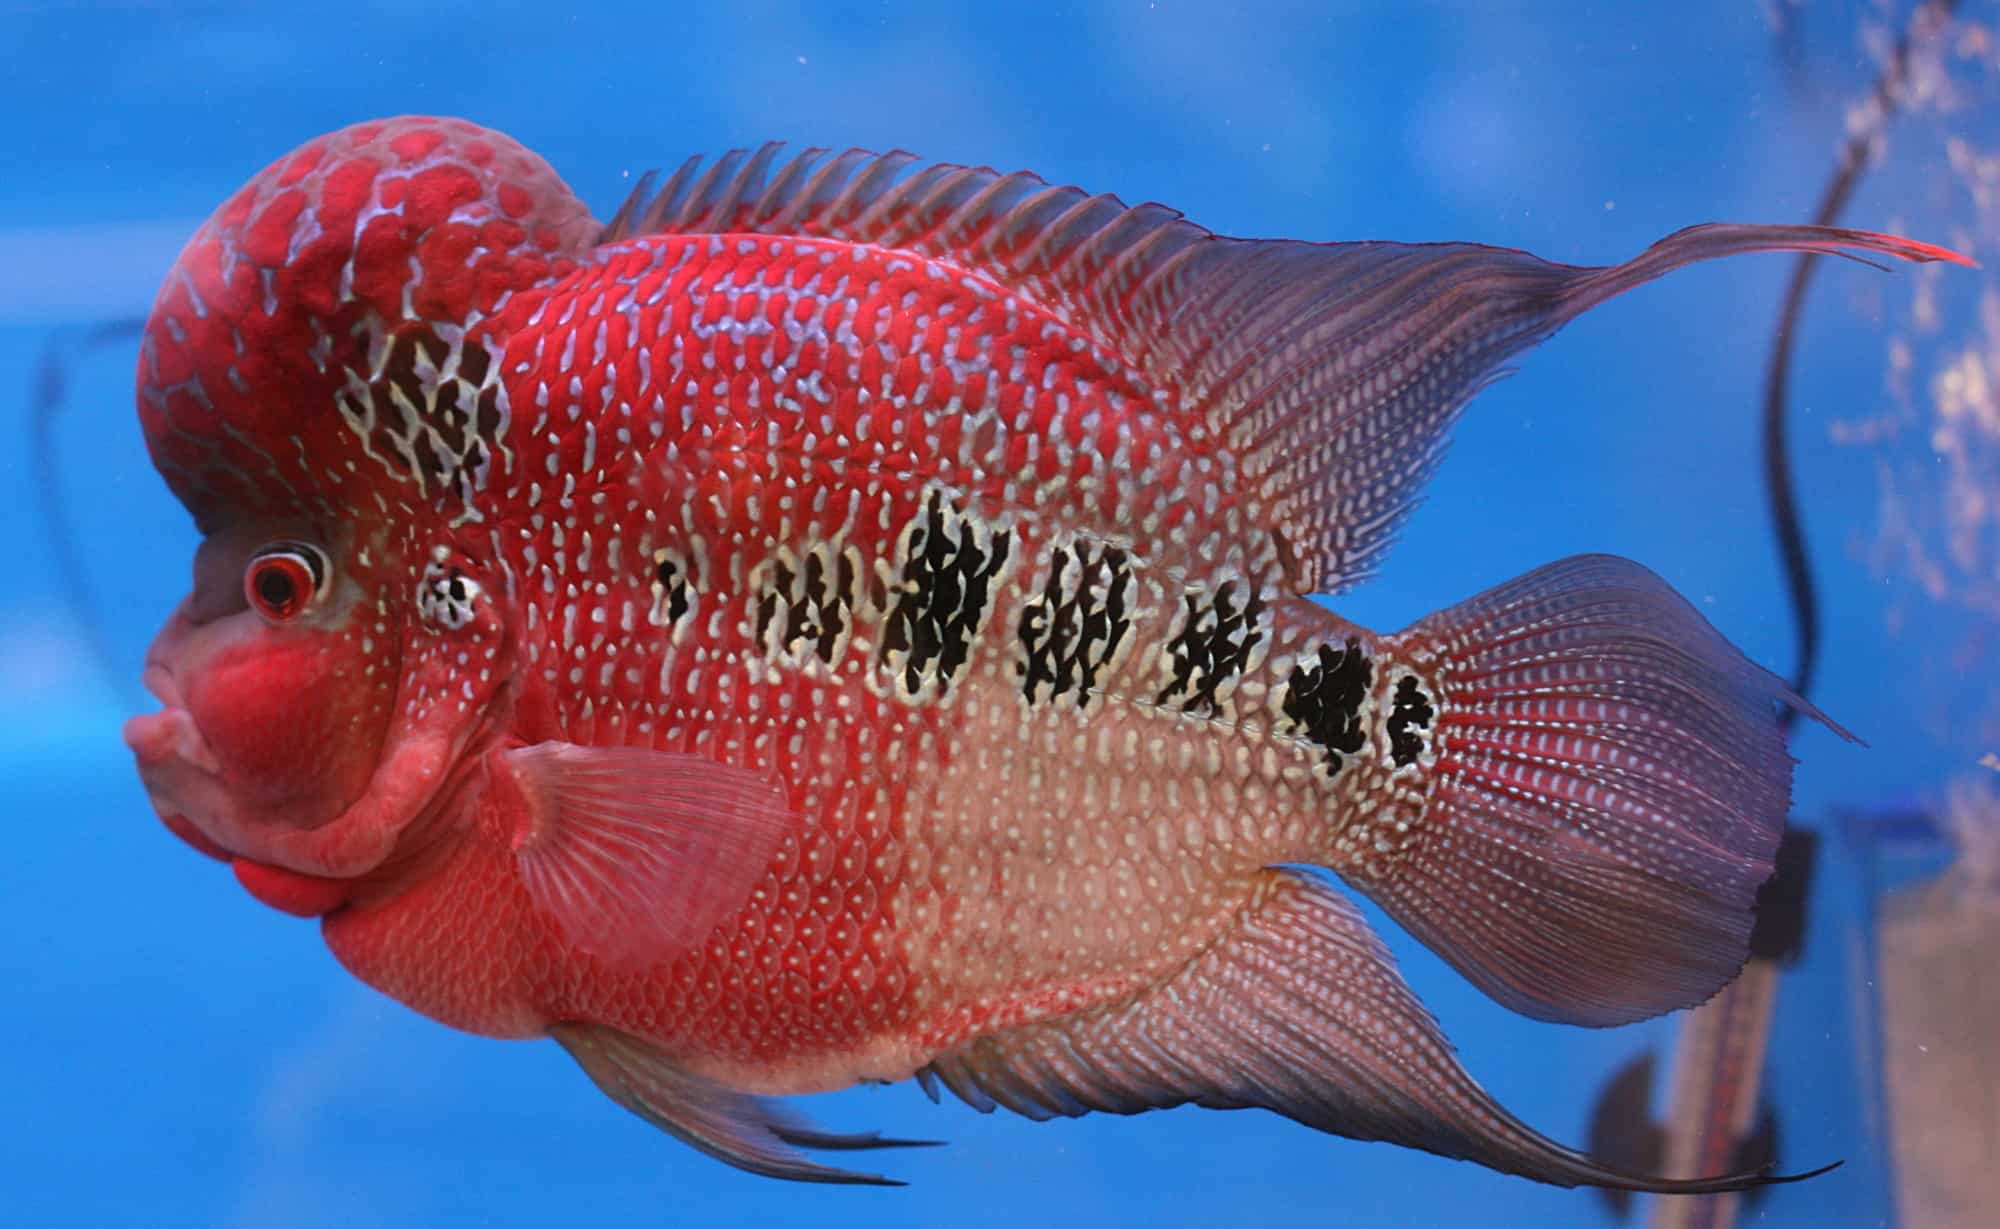 Basic Introduction to the 5 Types of Flowerhorns